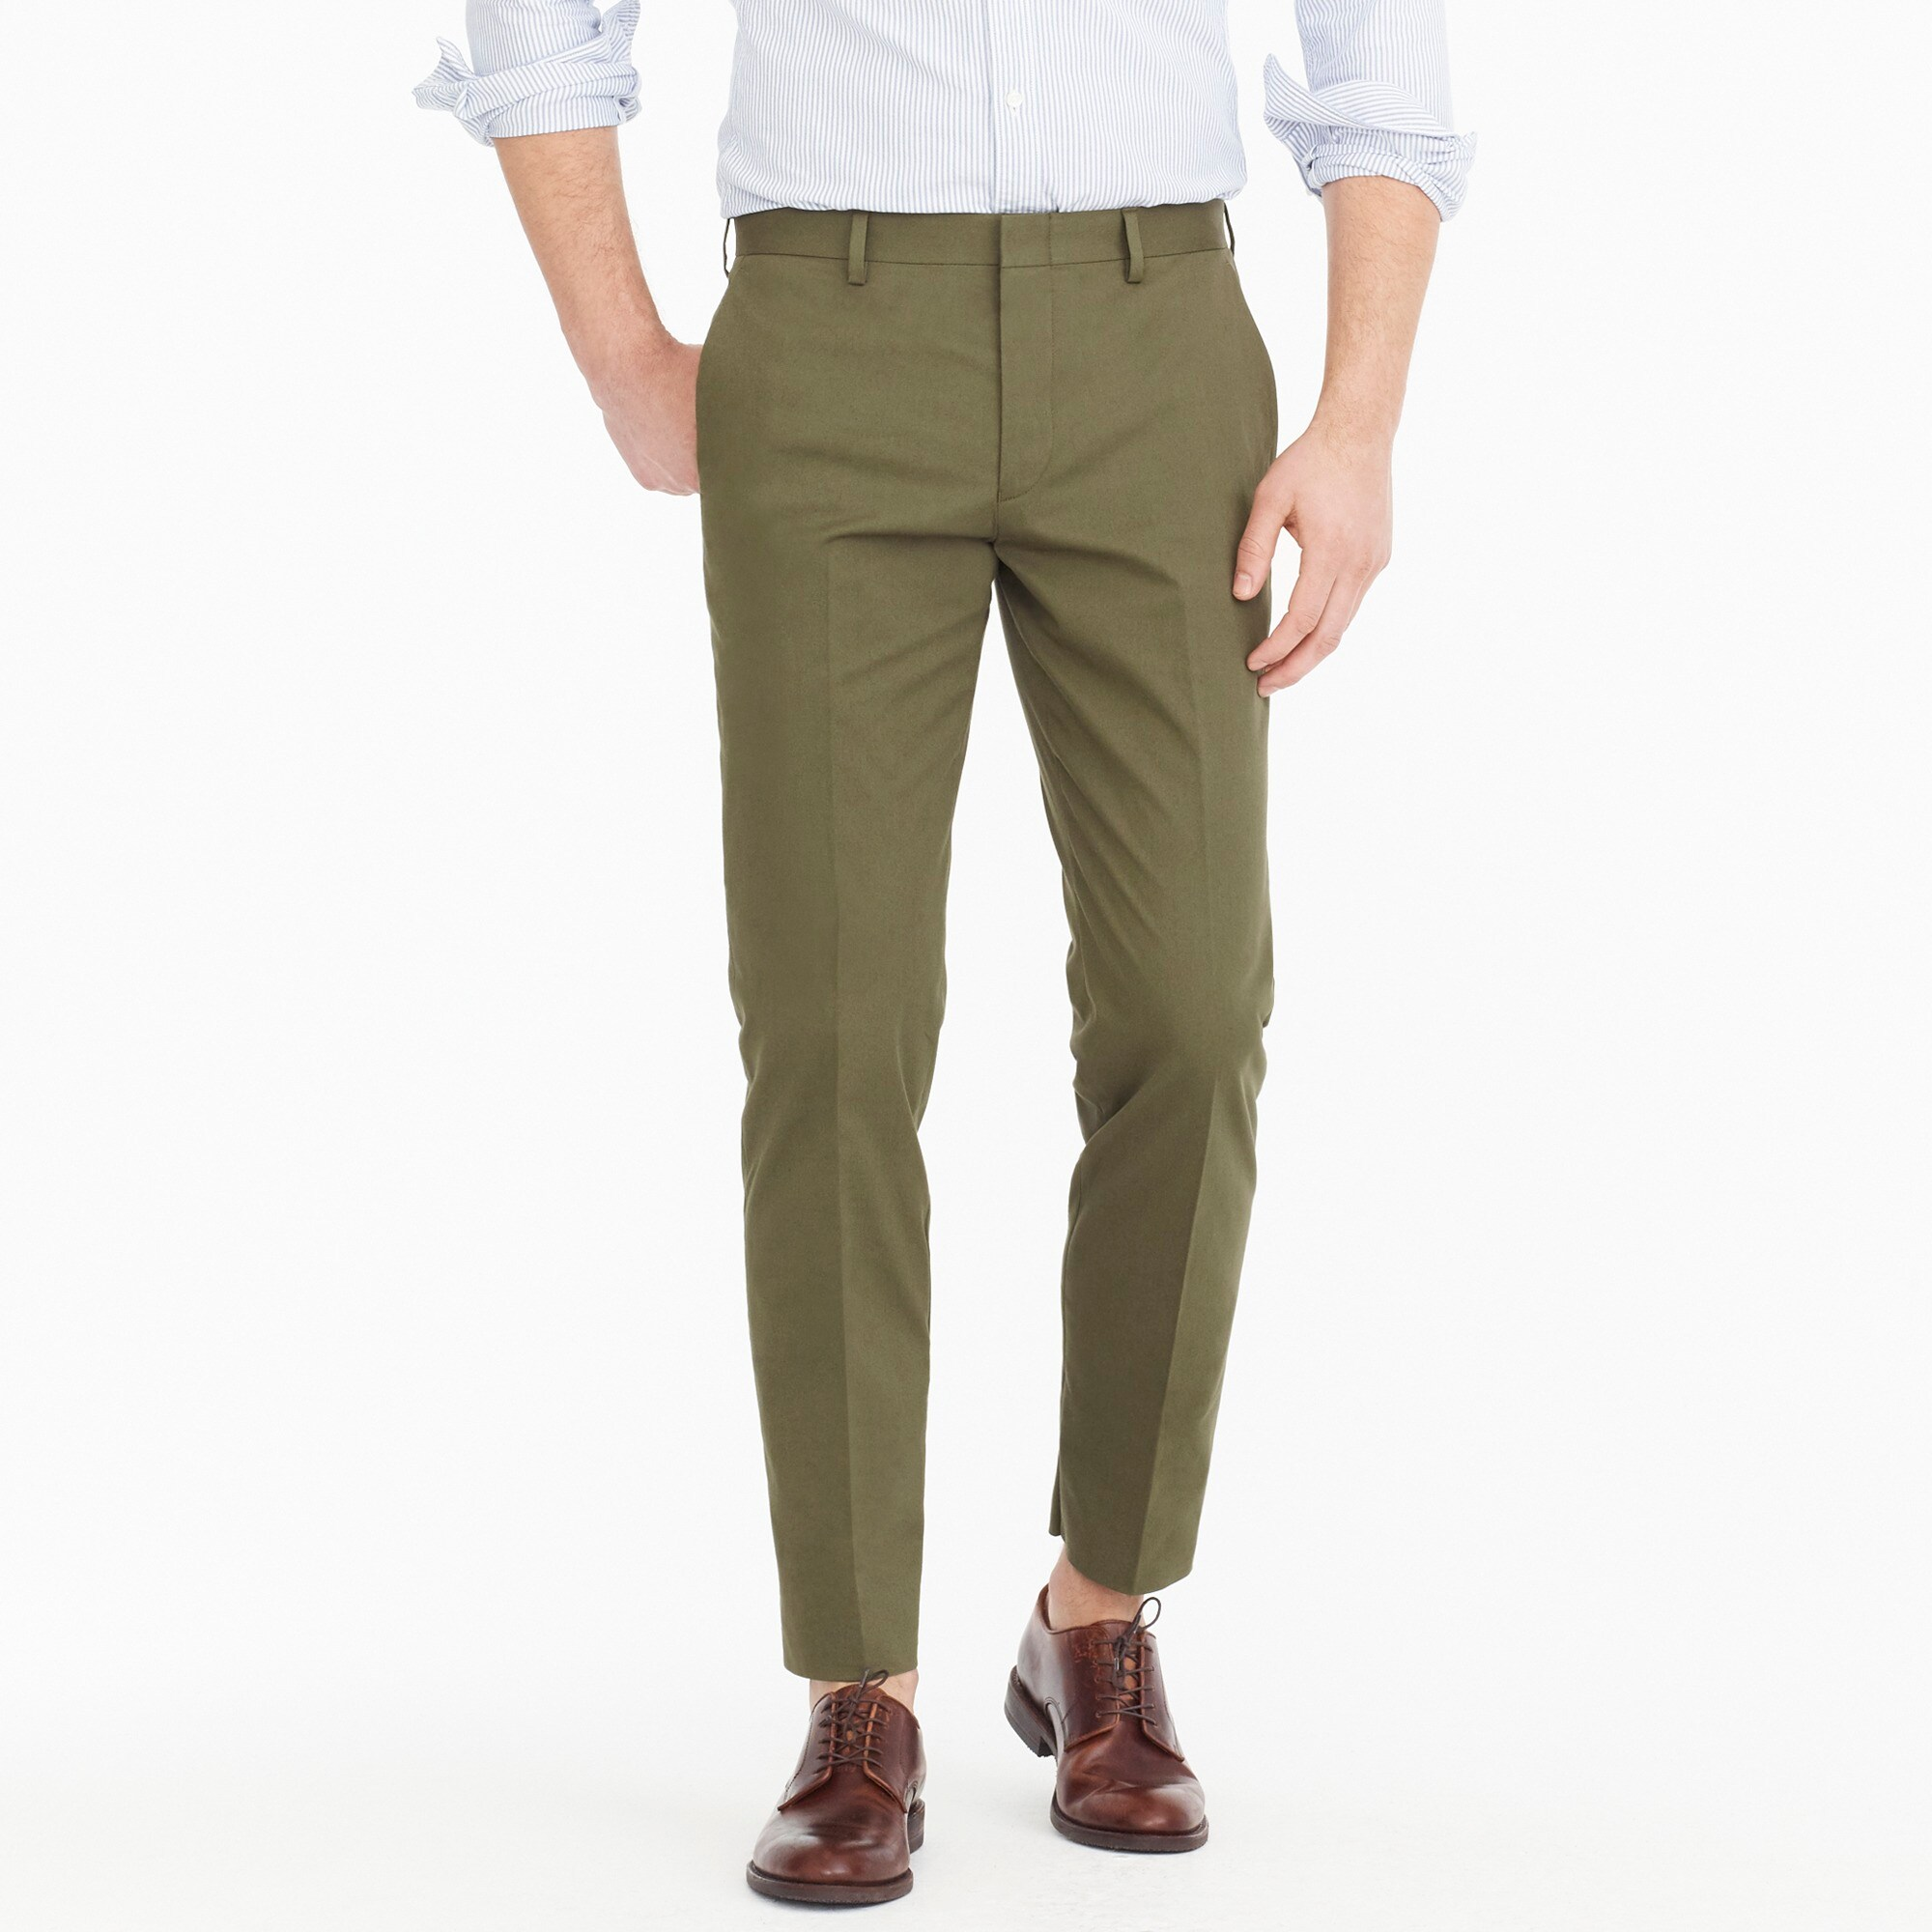 Ludlow suit pant in Italian stretch chino men pants c